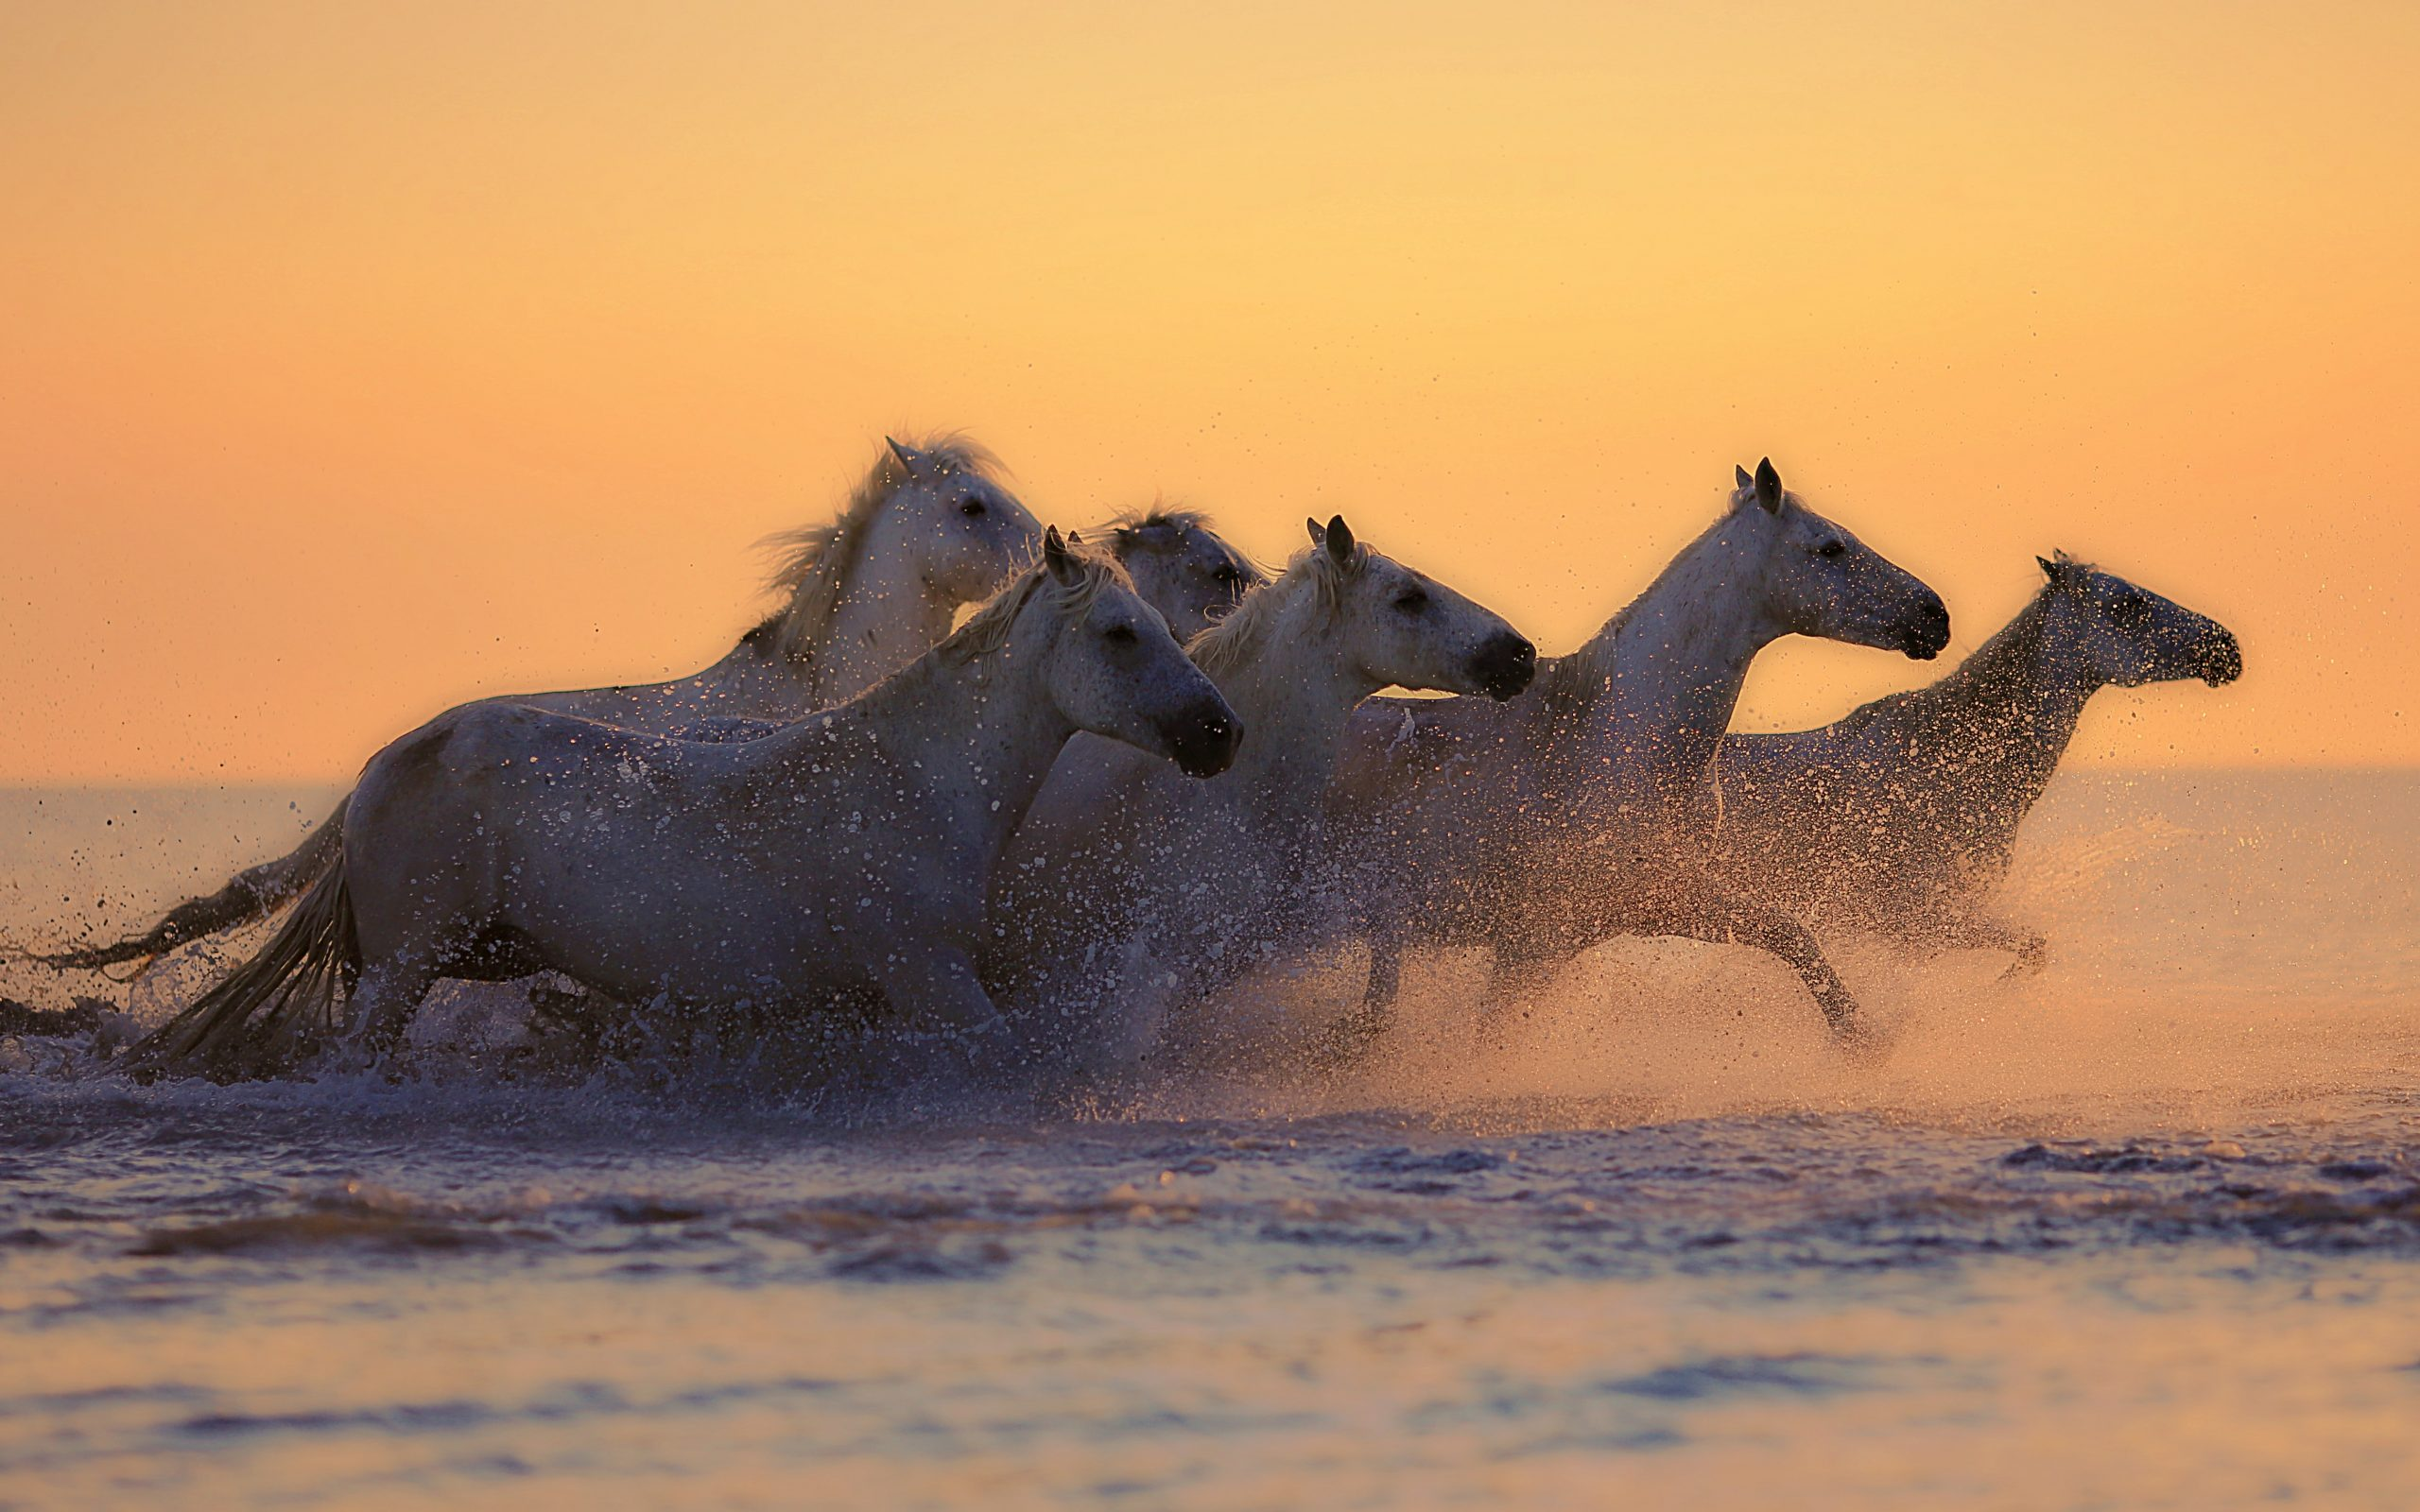 3d Wallpaper Hd Smartphone White Horses Galloping At Sunset 4k Uhd Wallpaper